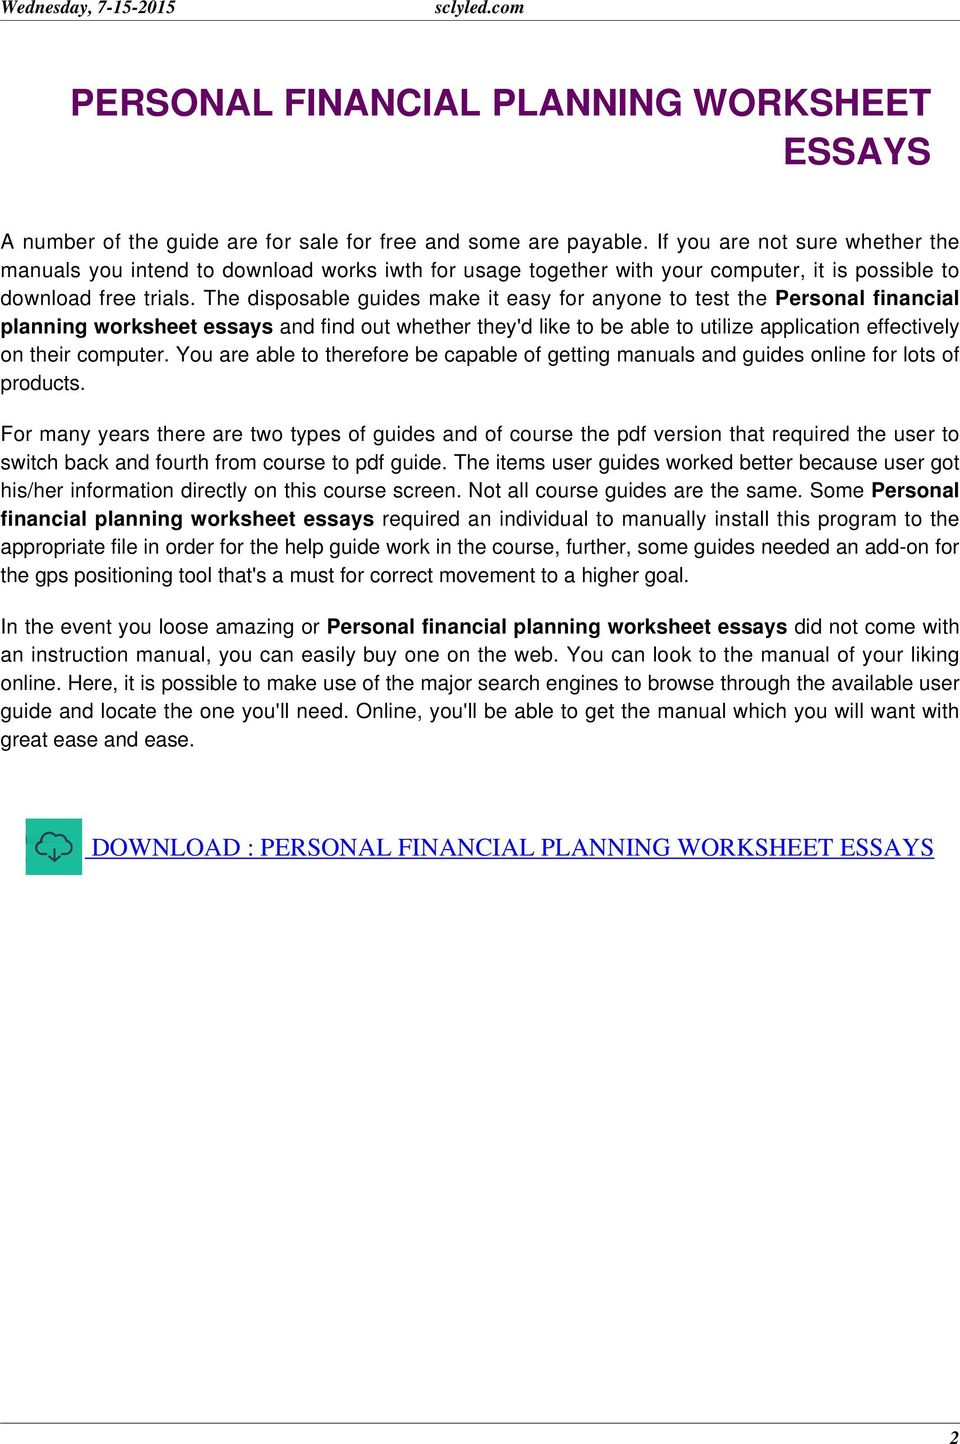 top tips for writing in a hurry personal finance essay journal of personal finance is distinctive in that it is financial planning practitioner oriented but is a refereed academic journal